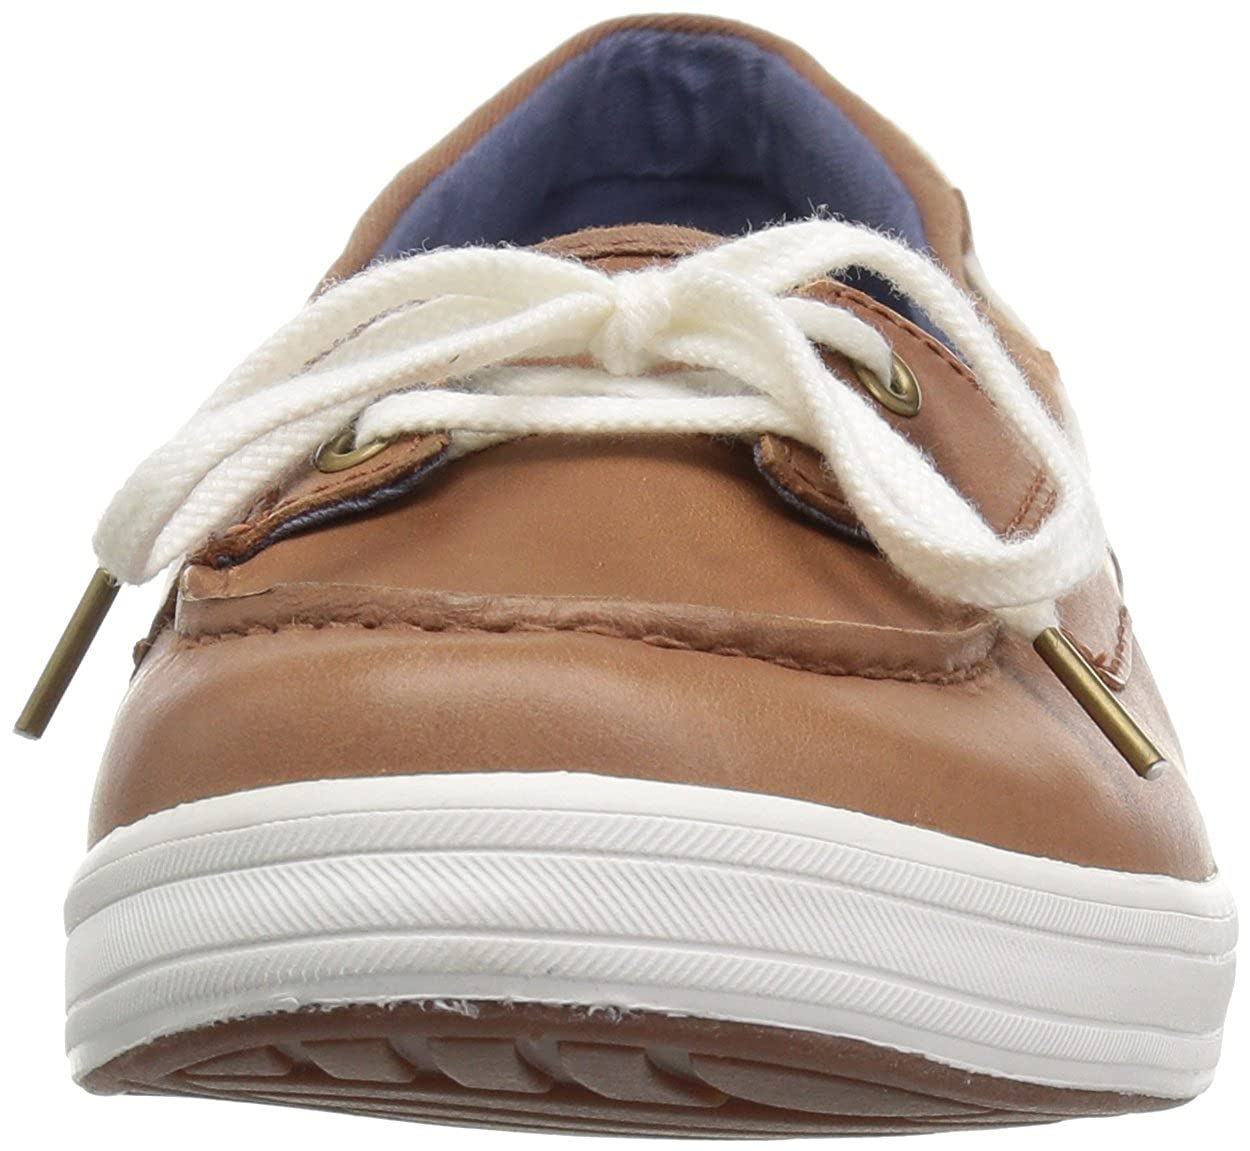 Keds Womens Glimmer Leather Sneaker